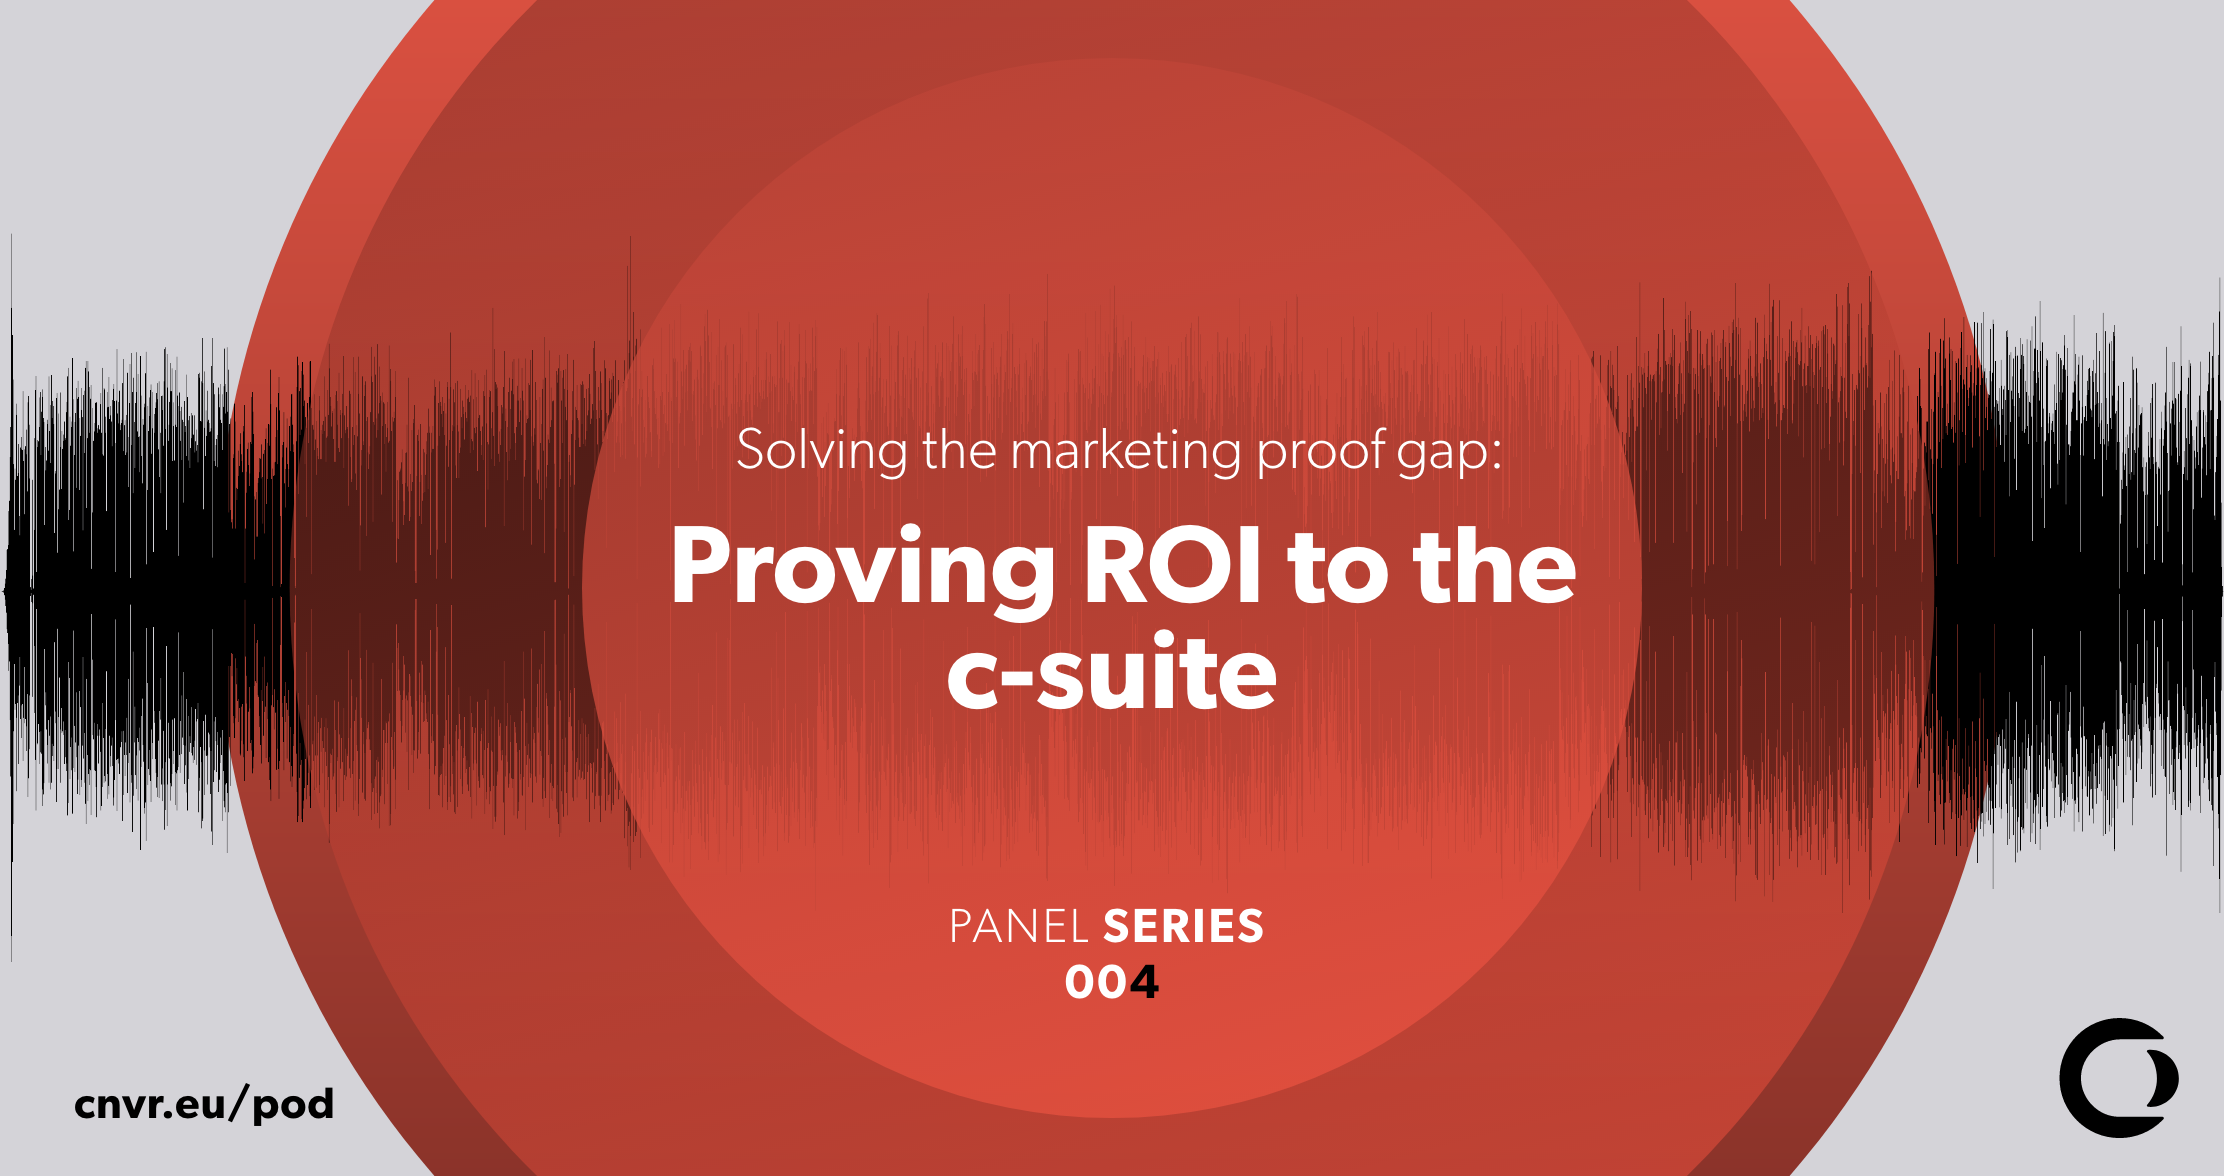 Proving ROI to the c-suite@2x